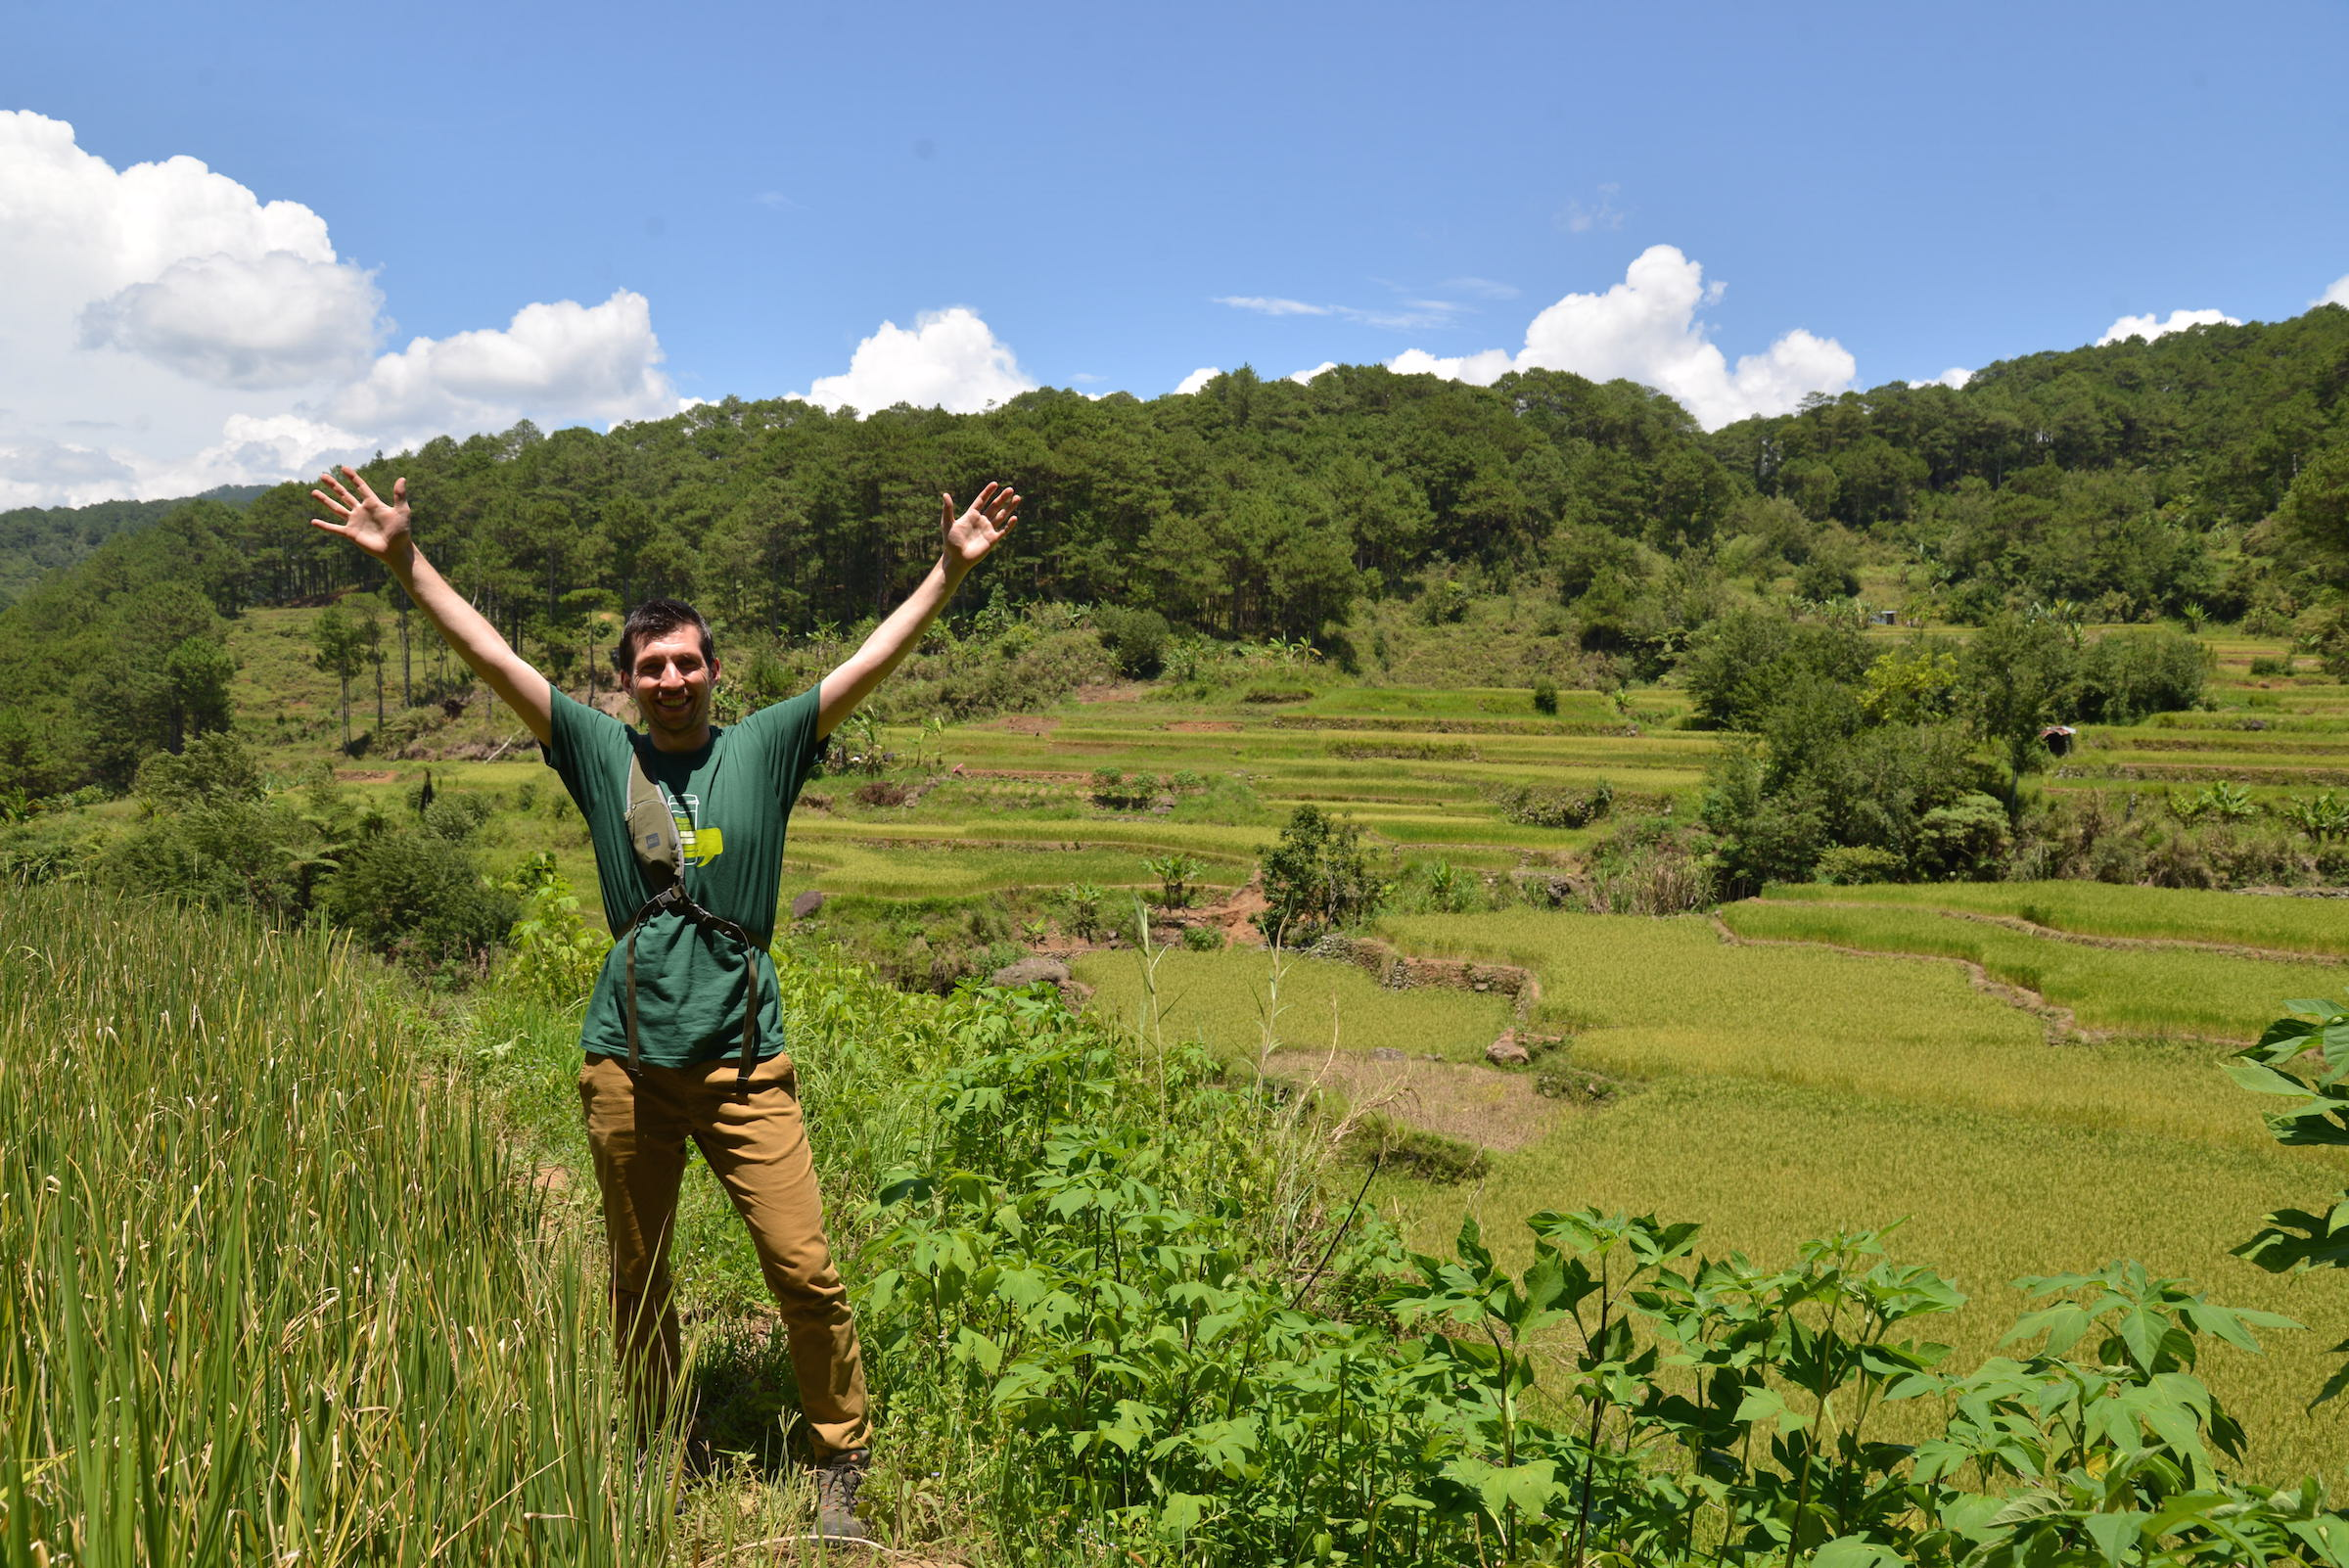 Paul celebrates among the rice paddies in Philippines.